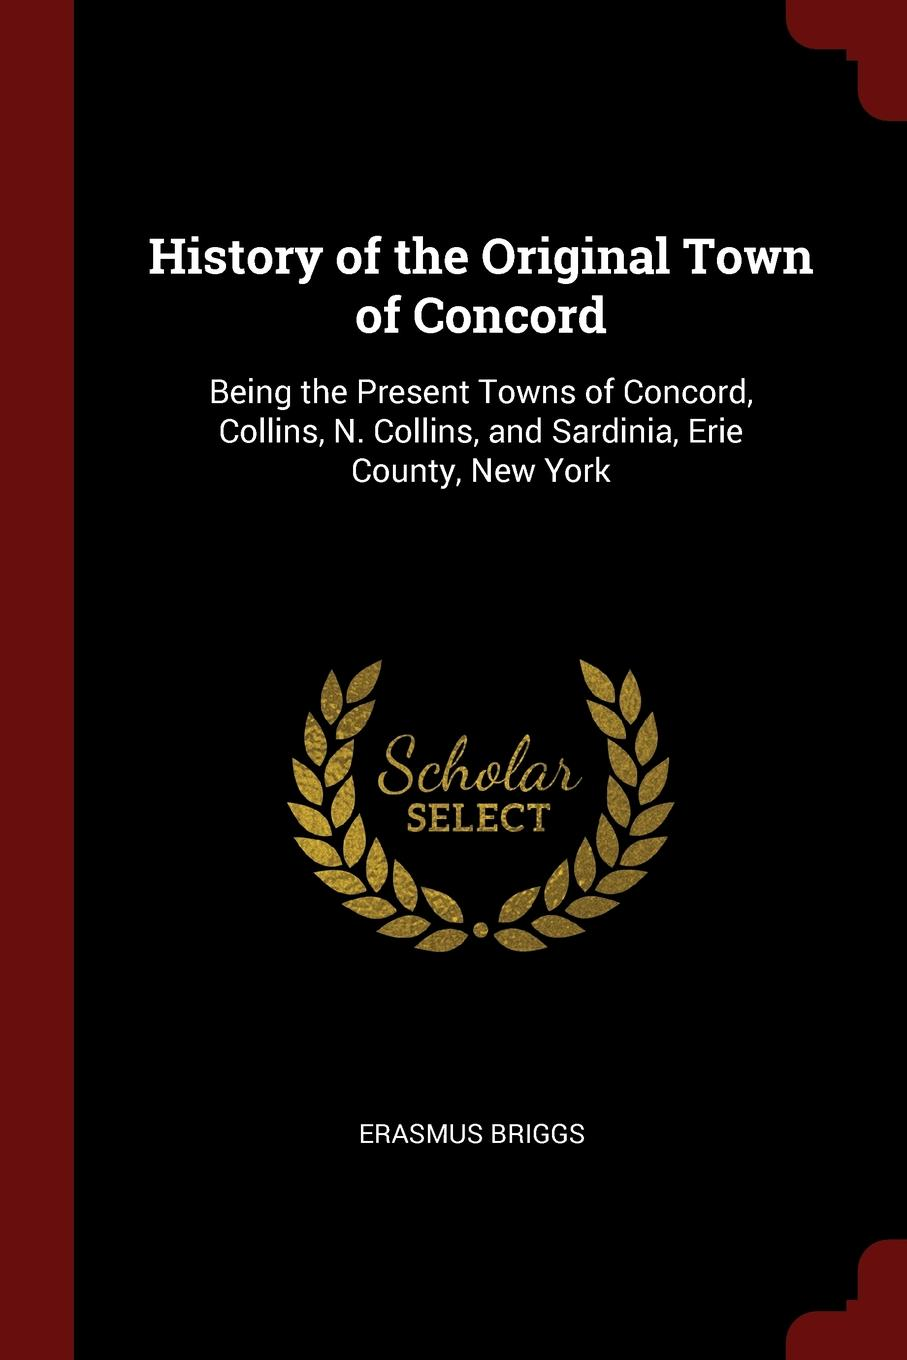 Erasmus Briggs History of the Original Town of Concord. Being the Present Towns of Concord, Collins, N. Collins, and Sardinia, Erie County, New York